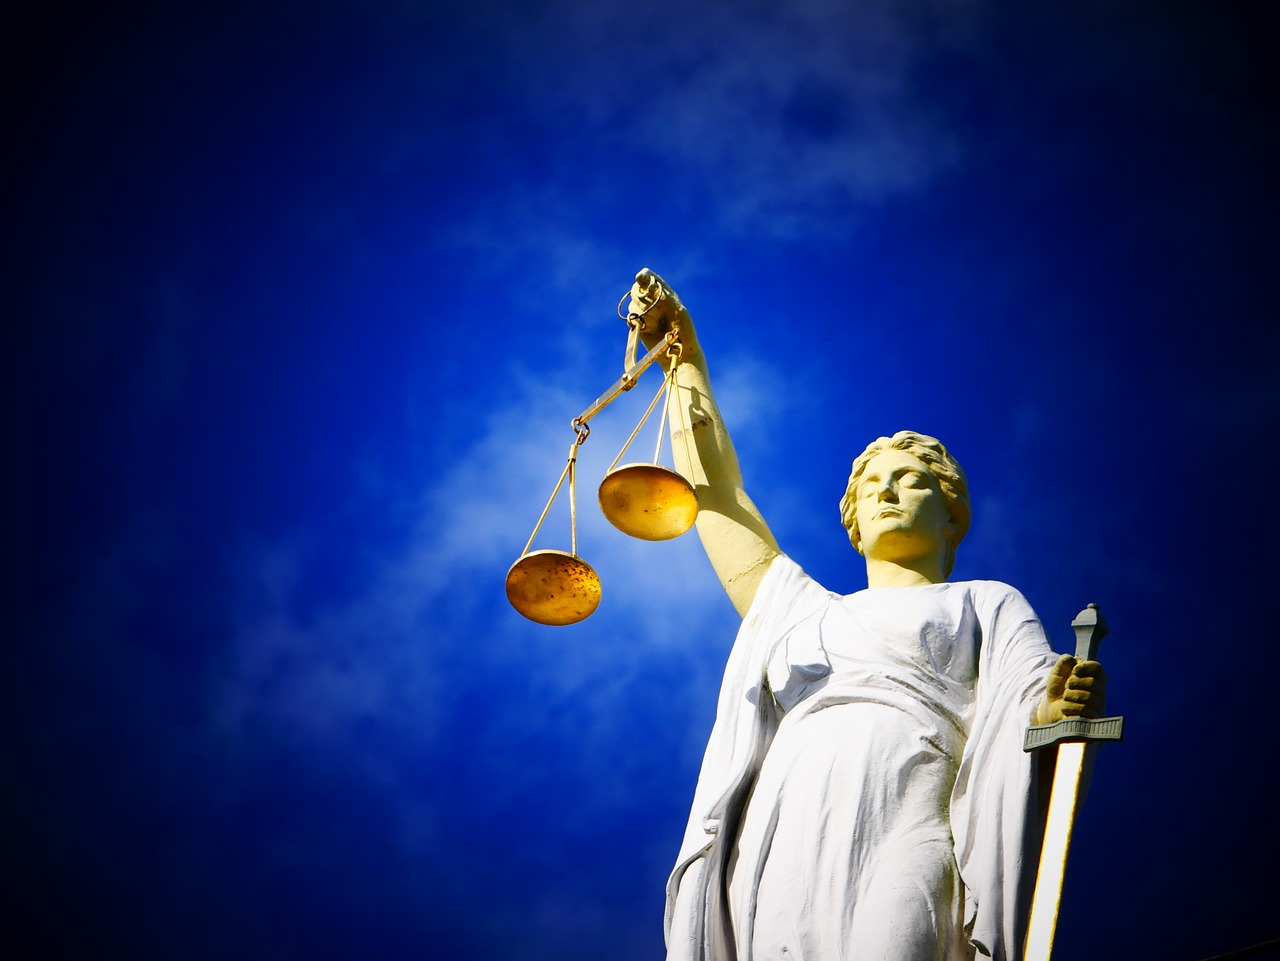 Baltimore Workers Compensation Attorney and Personal Injury Attorney